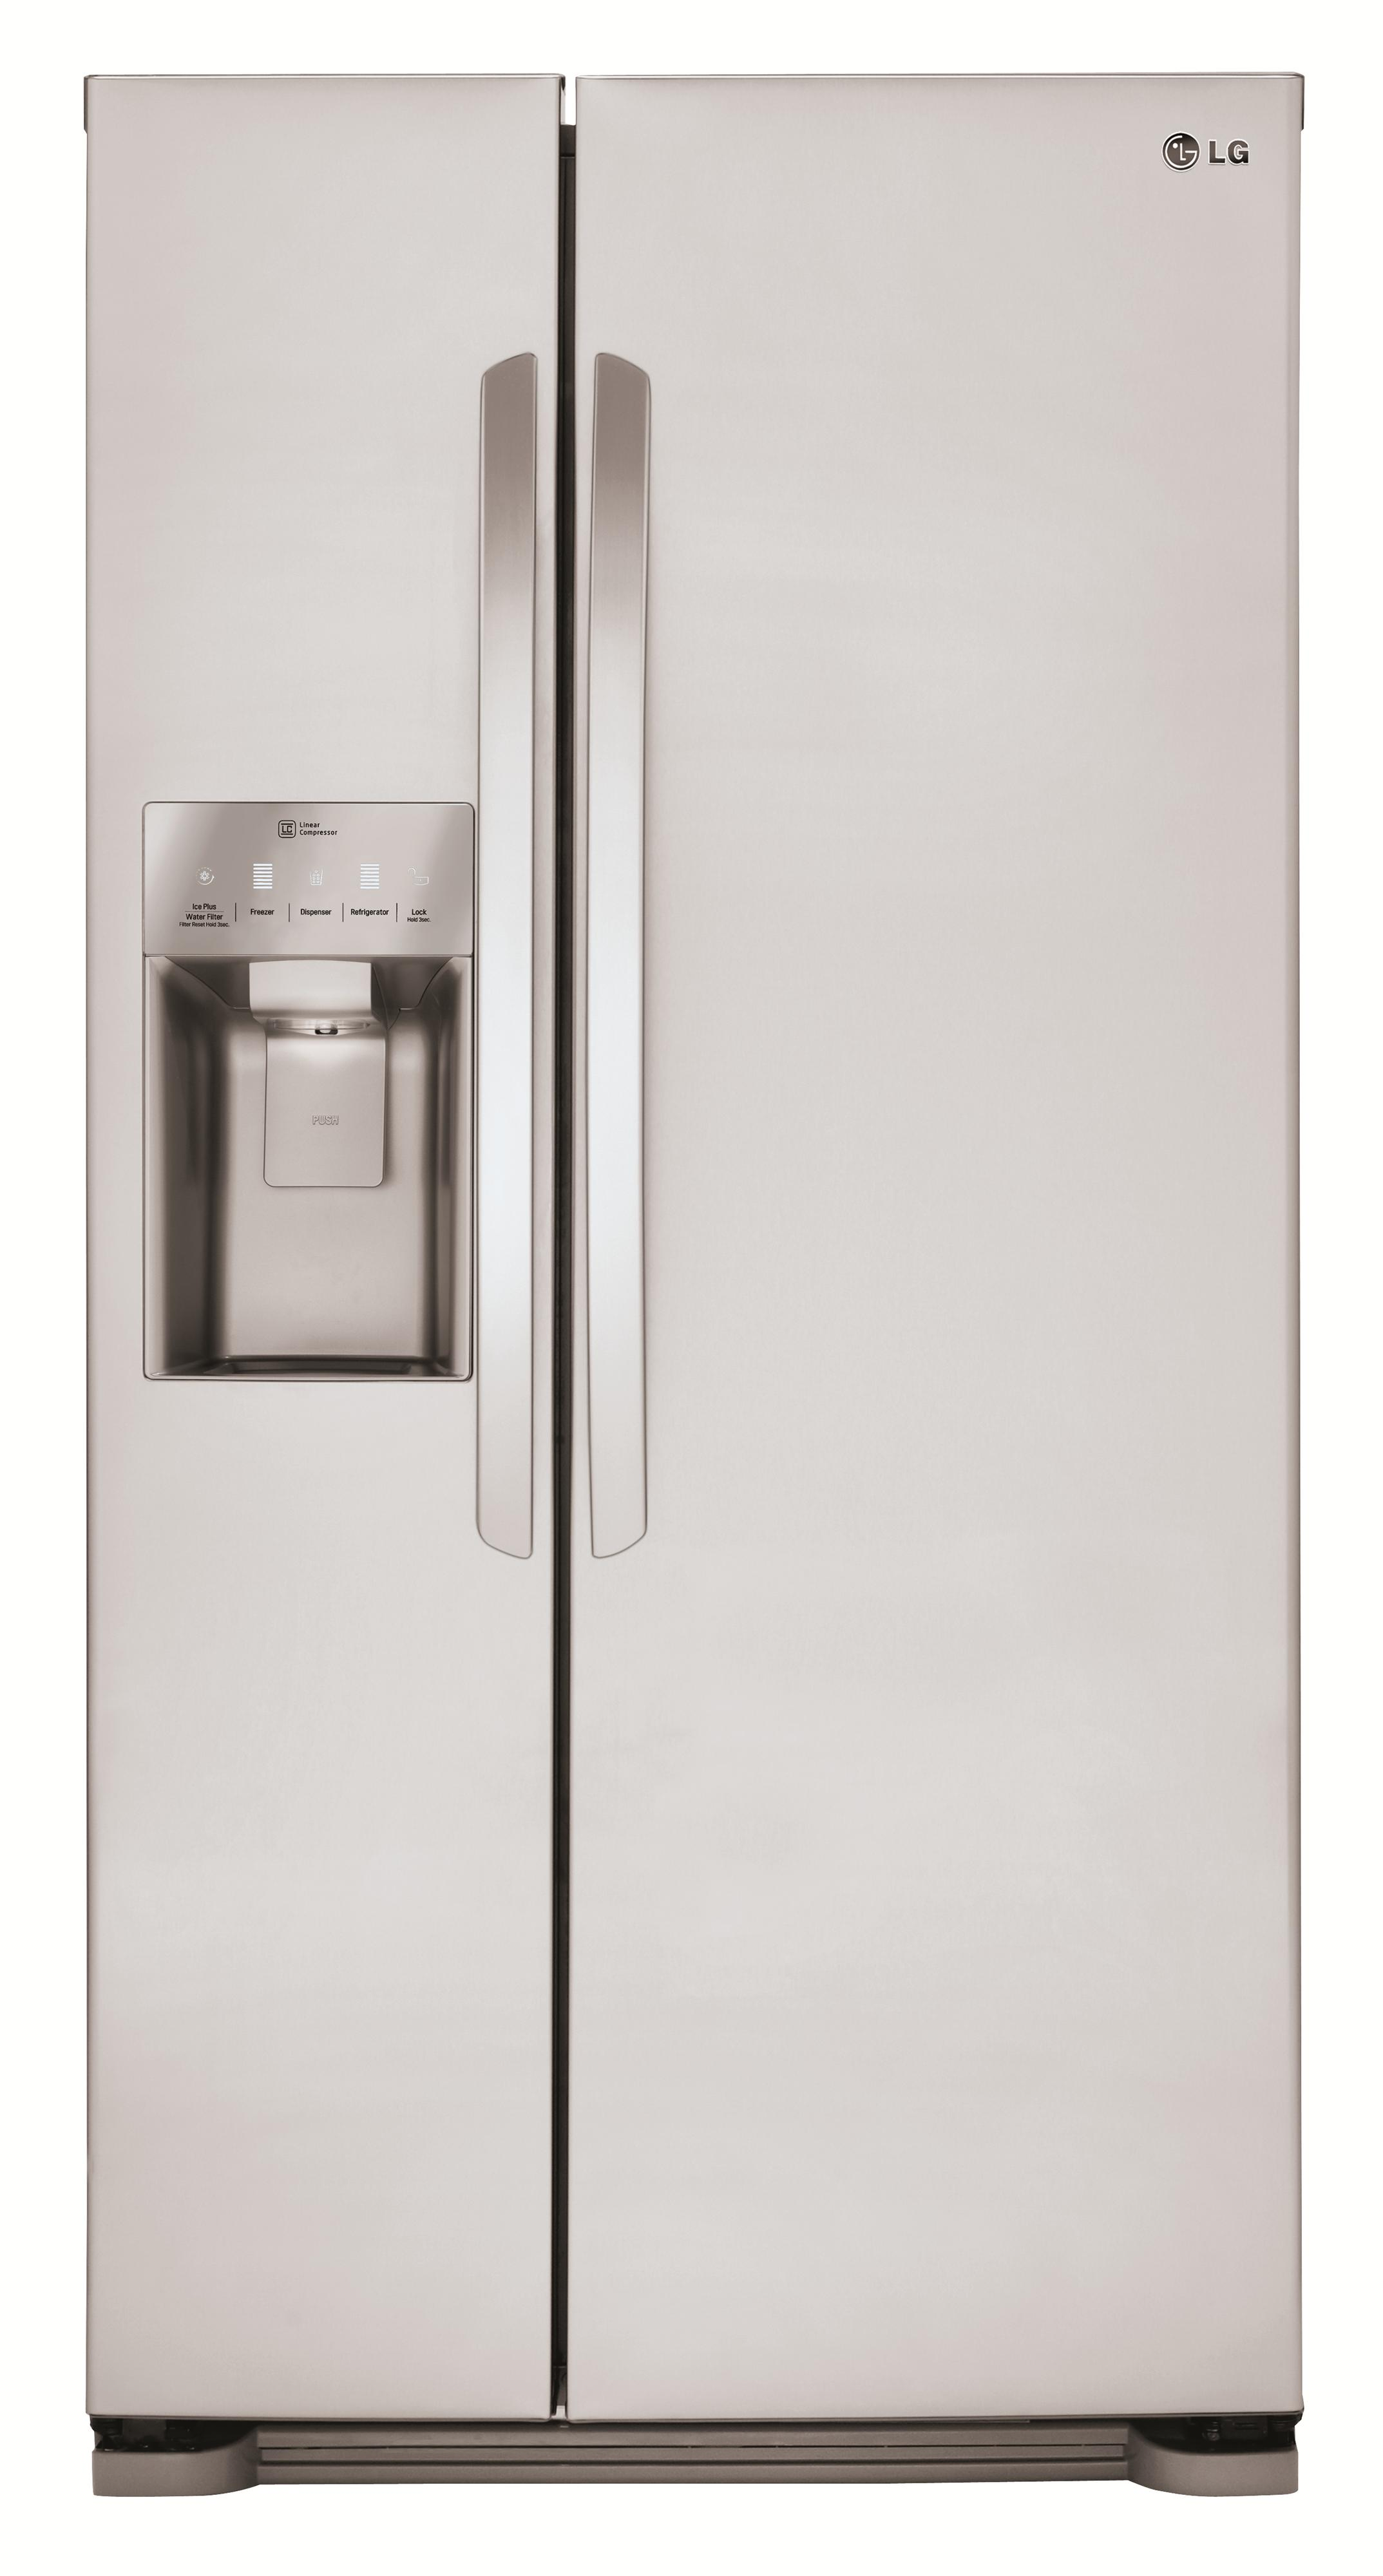 LG Appliances Side by Side Refrigerators 22 cu. ft. Side by Side Refrigerator - Item Number: LSXS22423S